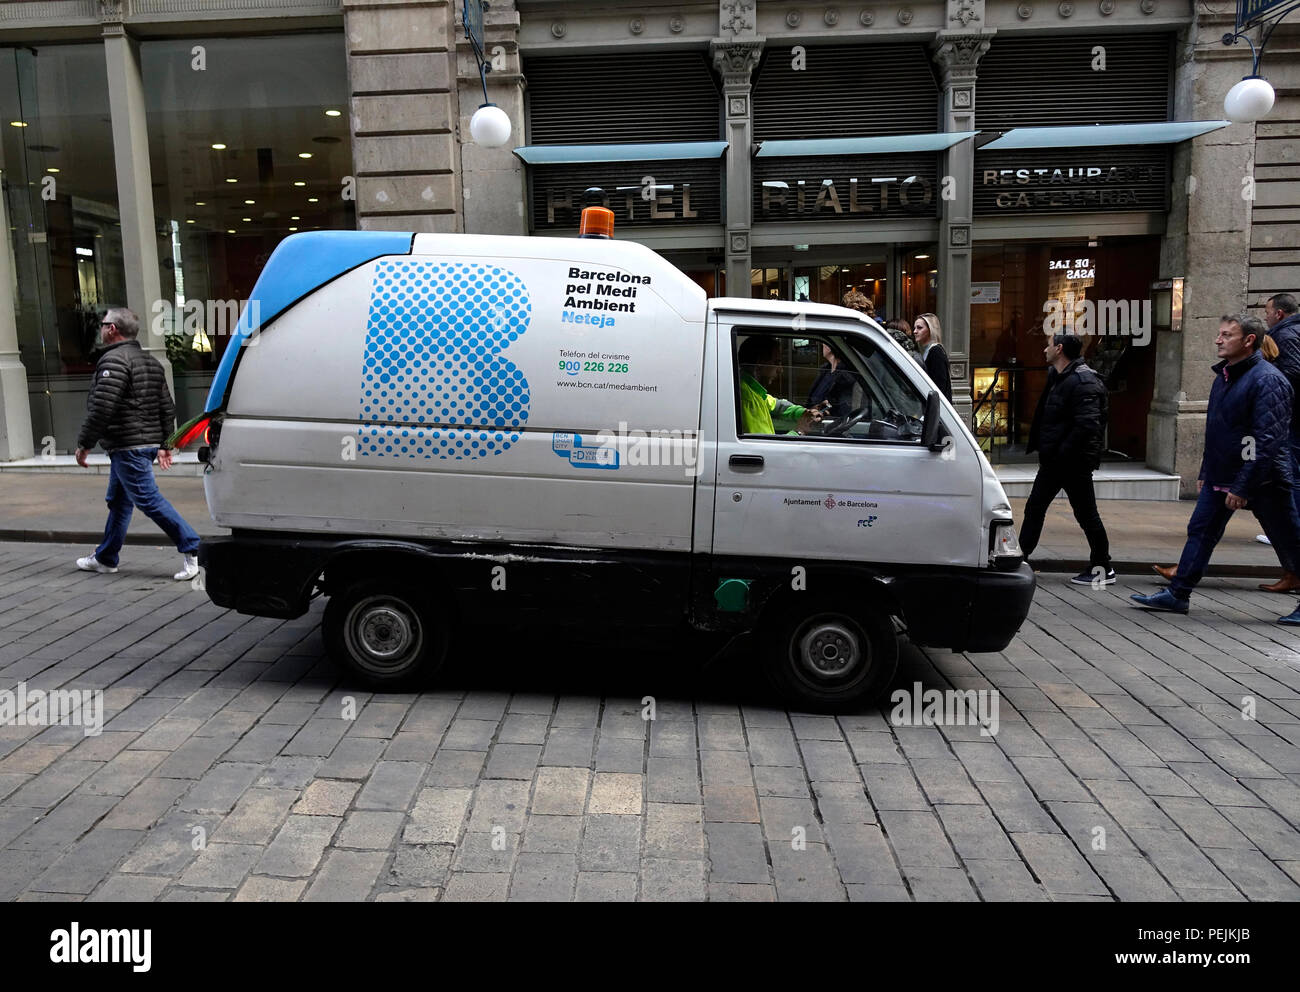 Barcelona Municipal Government Small Maintenance Van Electric Vehicle In The Old Quarter Of Barcelona Gothic Quarter - Stock Image